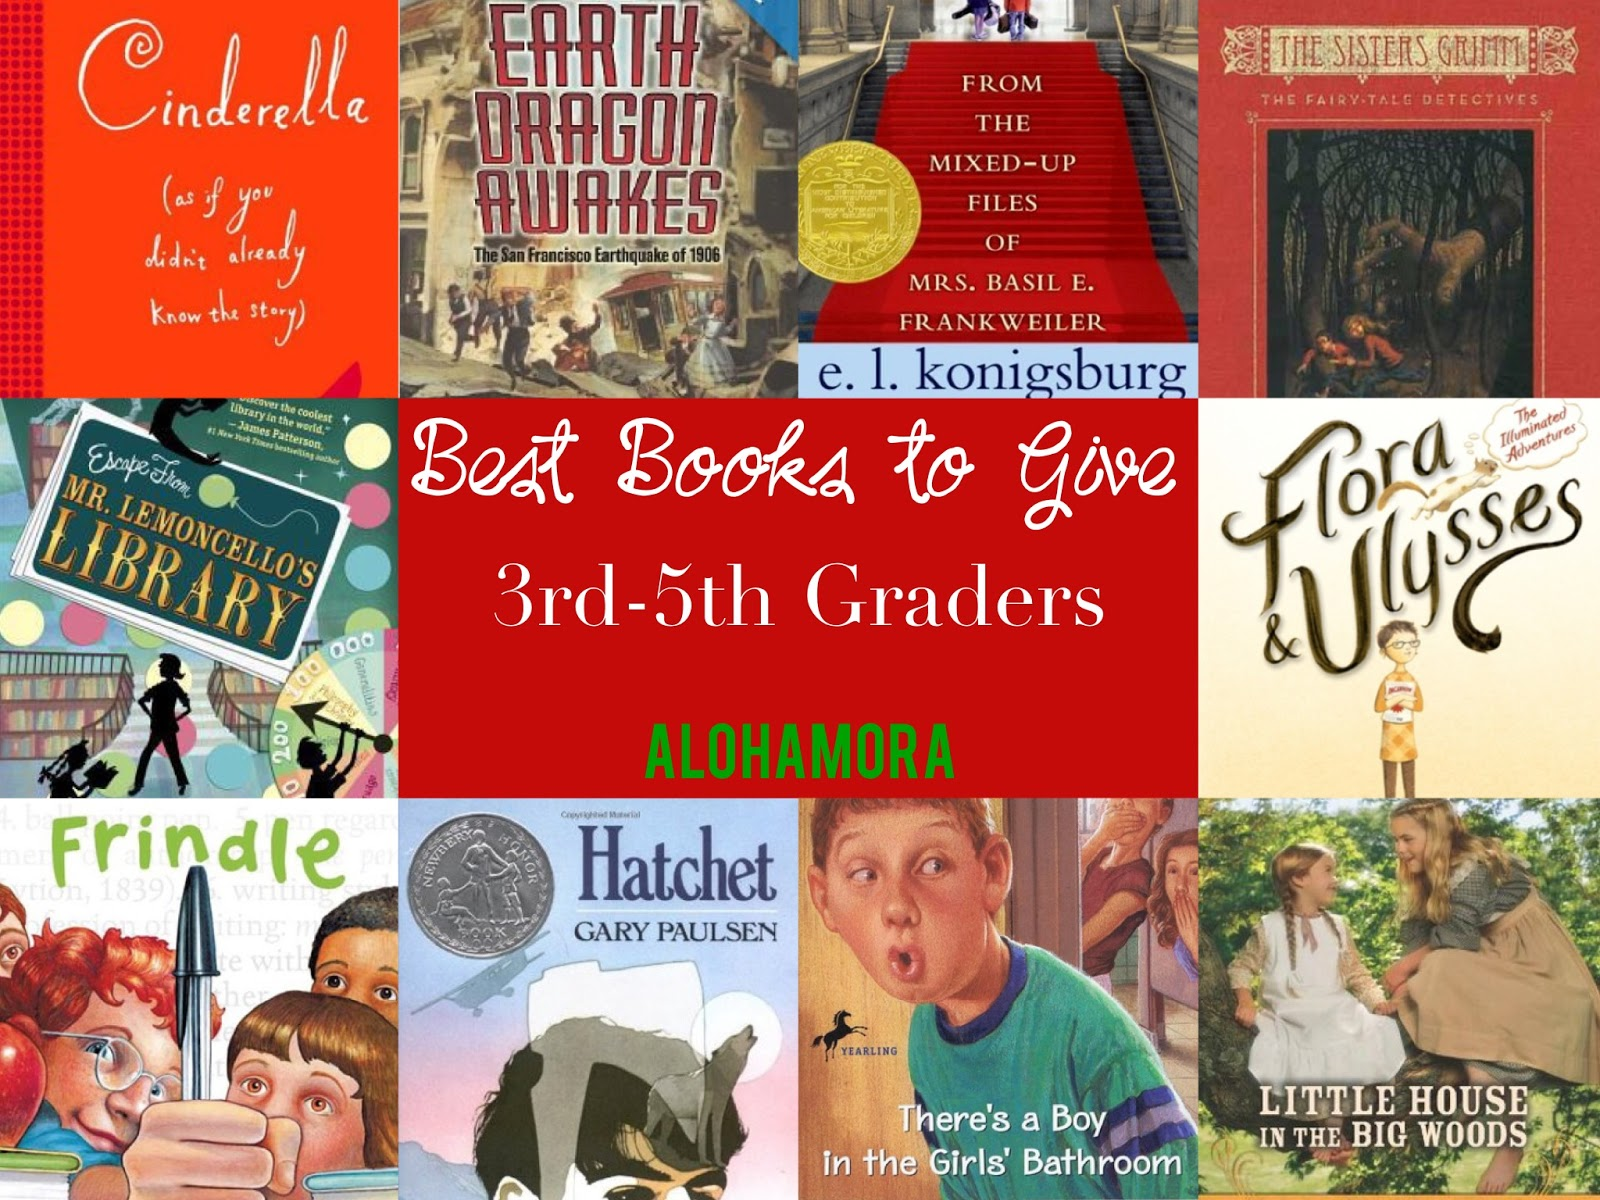 The Best Books to Give a Third (3rd) Fourth (4th) or Fifth (5th) grader.  All genres (mystery, fantasy, realistic, school stories, adventure, etc.) represented.   Books all kids will like as well as specific books for boys and girls.  Check them out.   These books are fabulous books that are bound to get your kid reading.  Alohamora Open a Book http://alohamoraopenabook.blogspot.com/